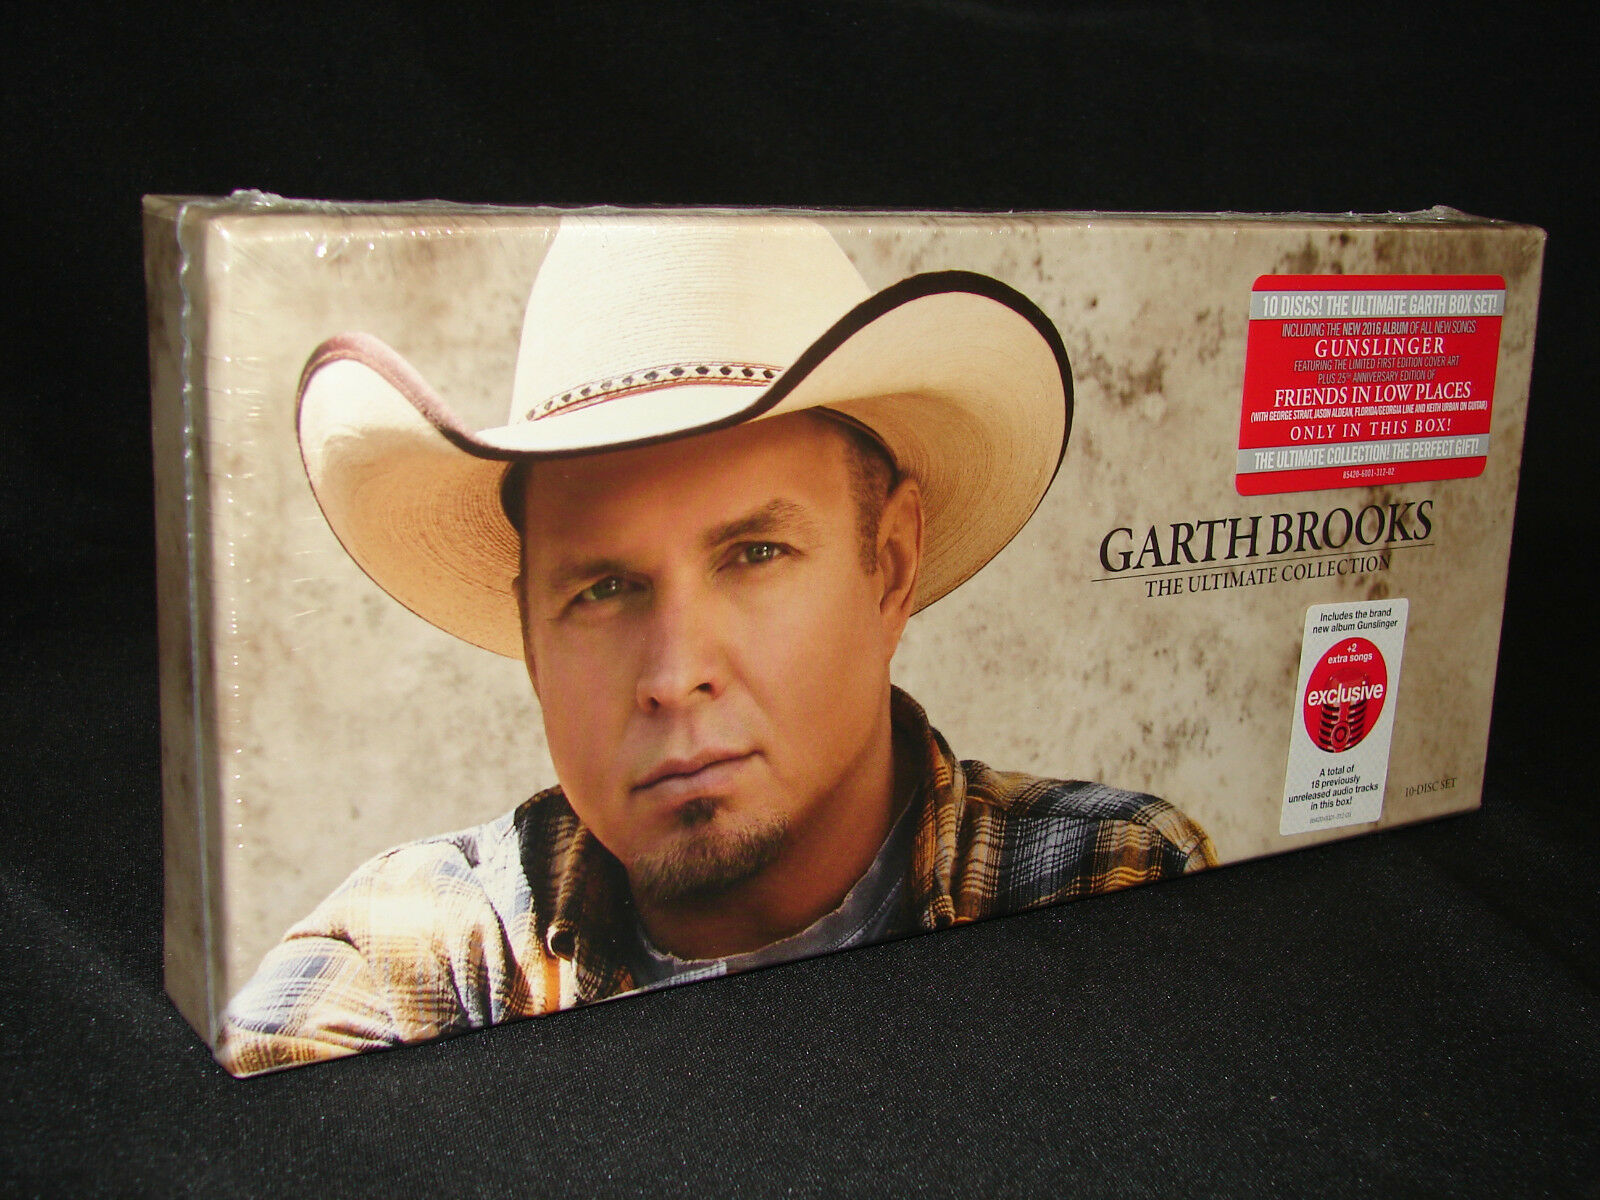 Купить Garth Brooks - The Ultimate Collection - 10 Disc Set - CDs - Music - **SEALED**